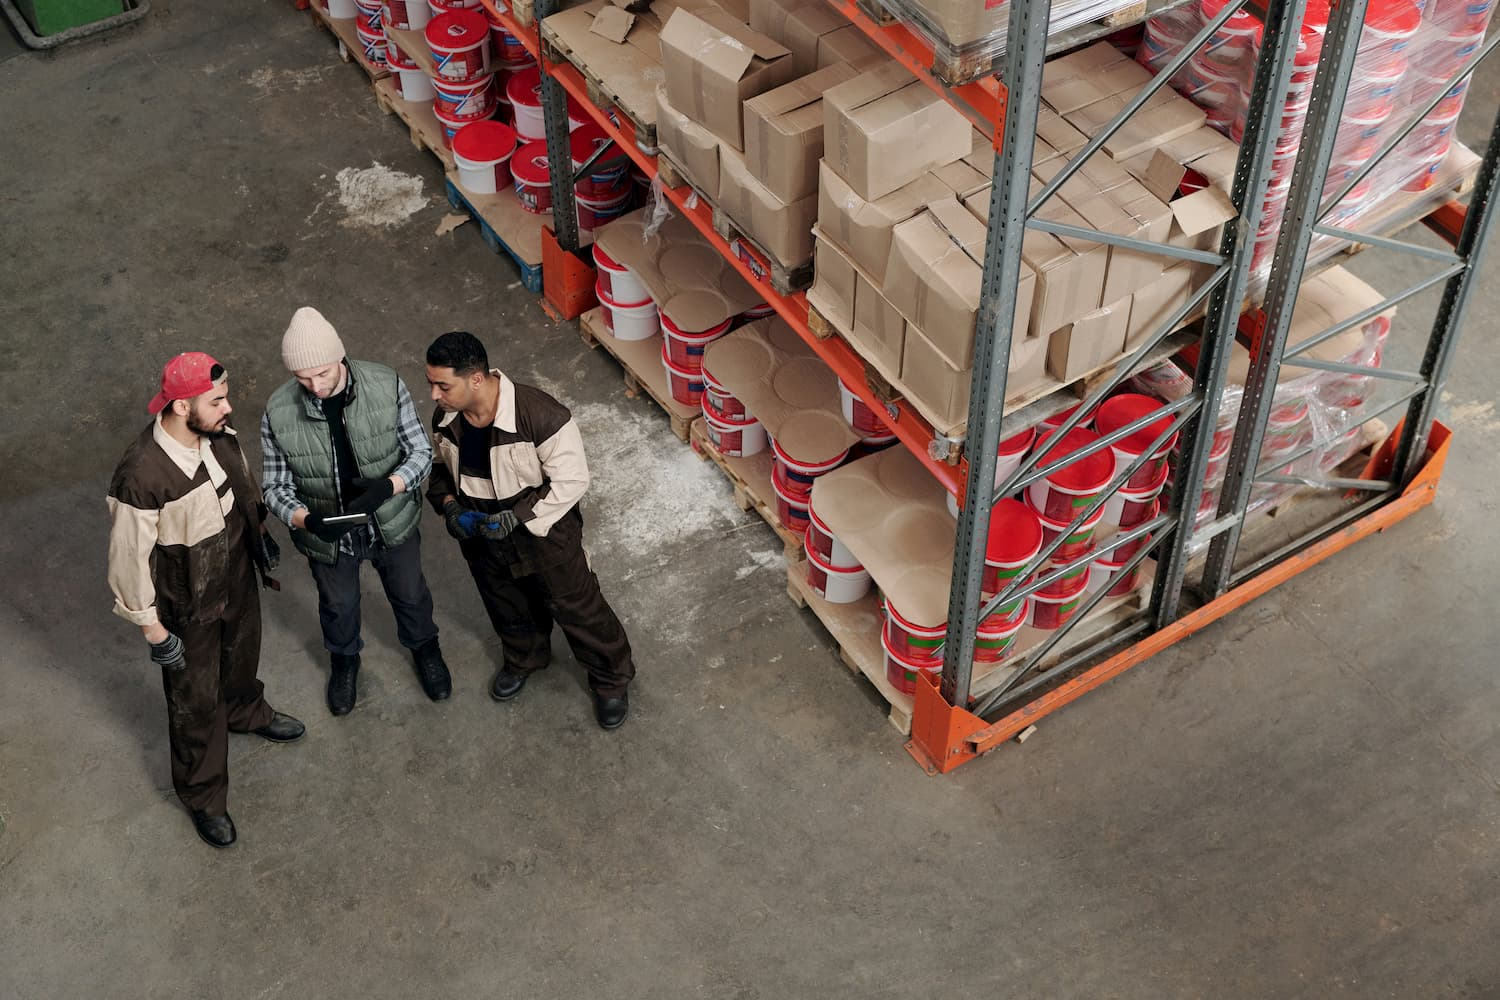 men-standing-in-a-warehouse-talking-4480984 (1)